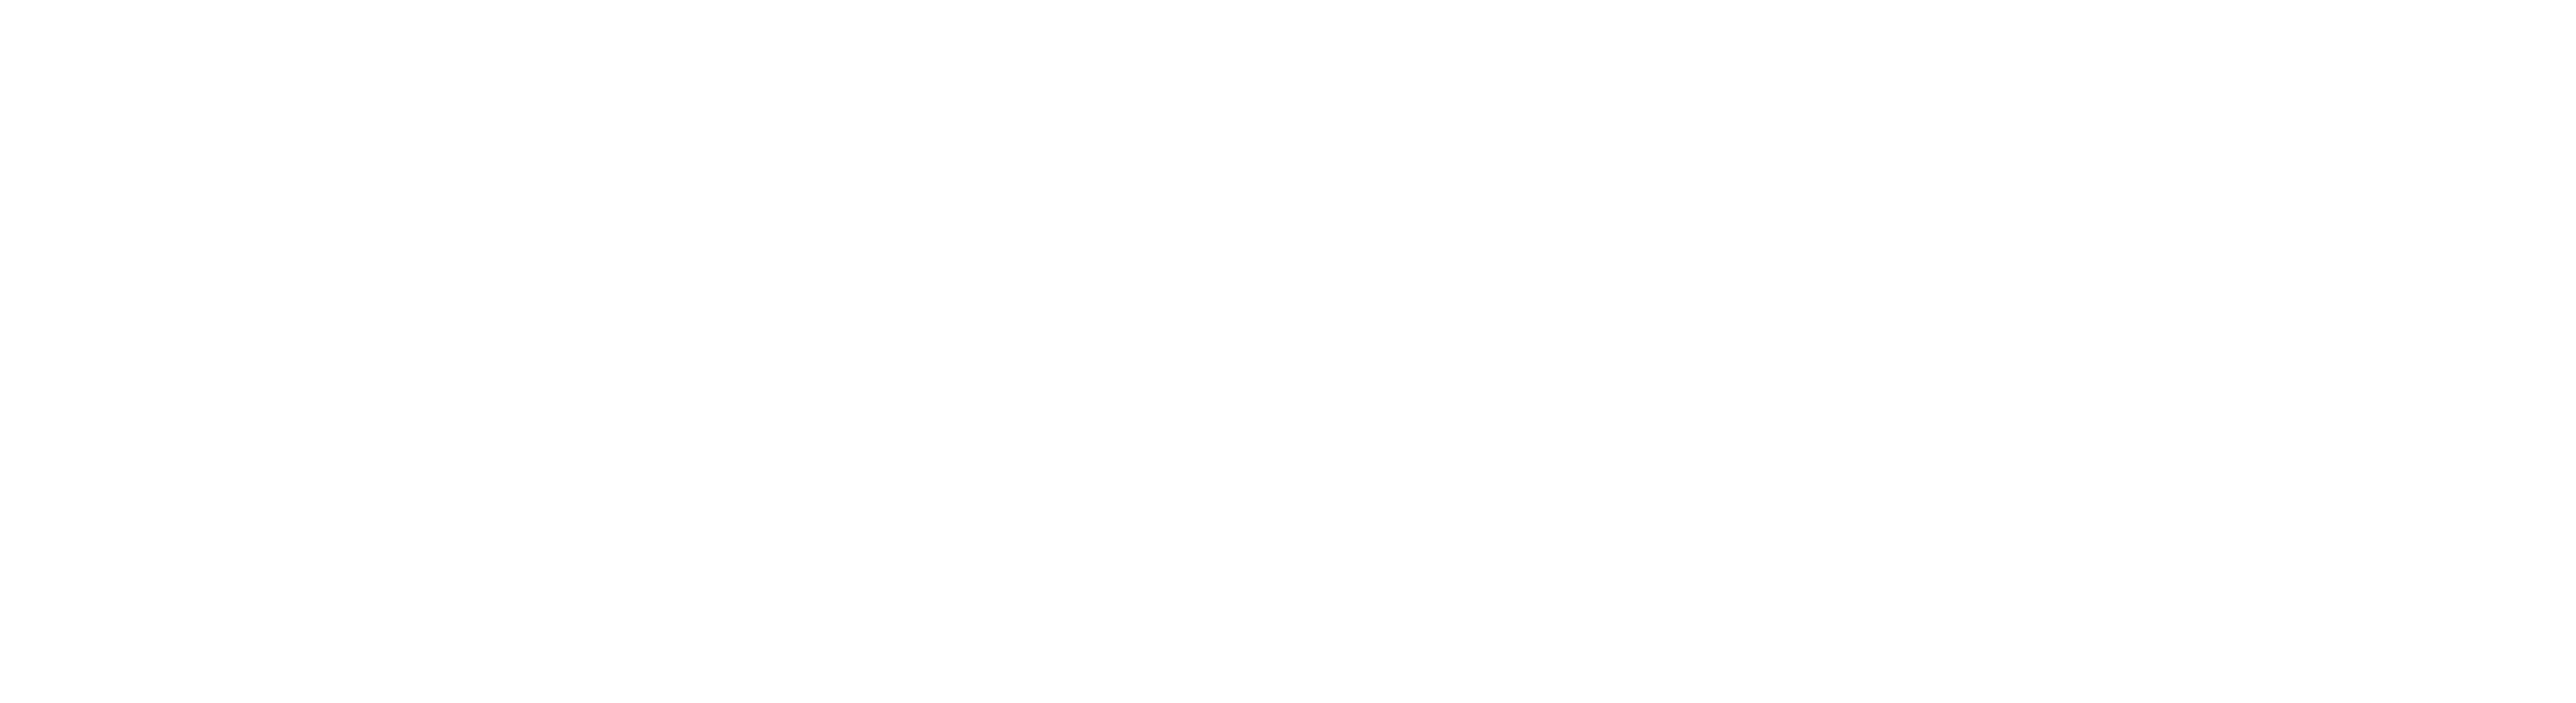 Carrollton Design Build